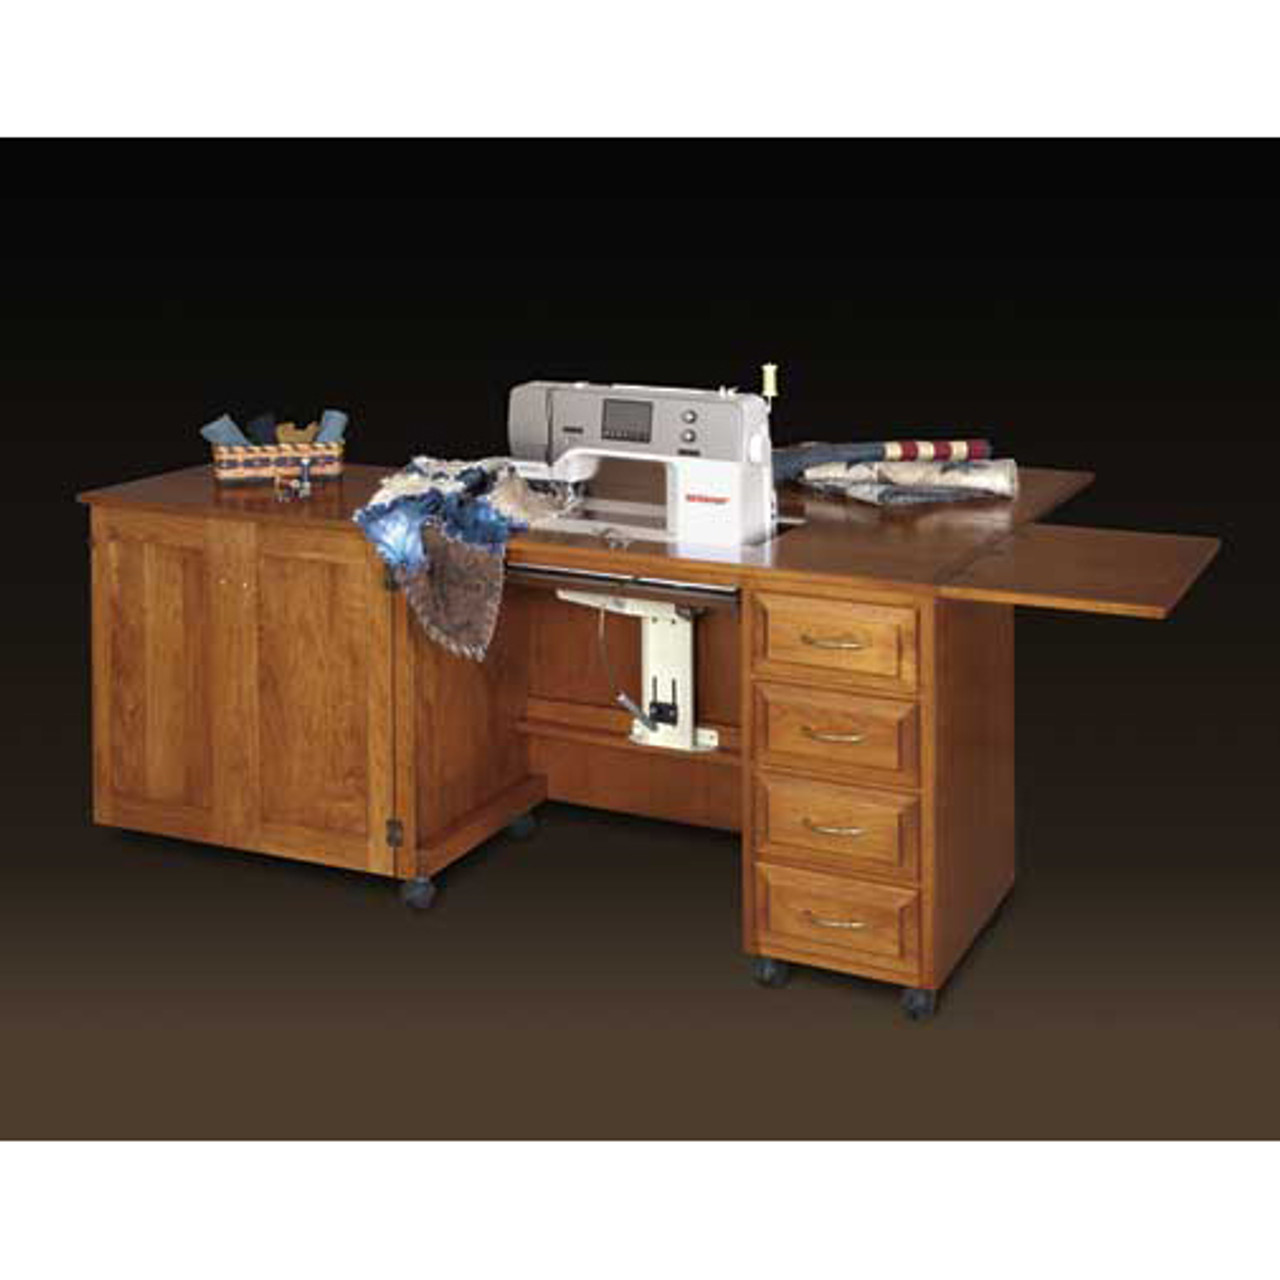 Bon Schrocks Of Walnut Creek Larger Standard Cabinet In Real Cherry Wood And  Your Choice Of Stain $1,983.00   FREE SHIPPING!